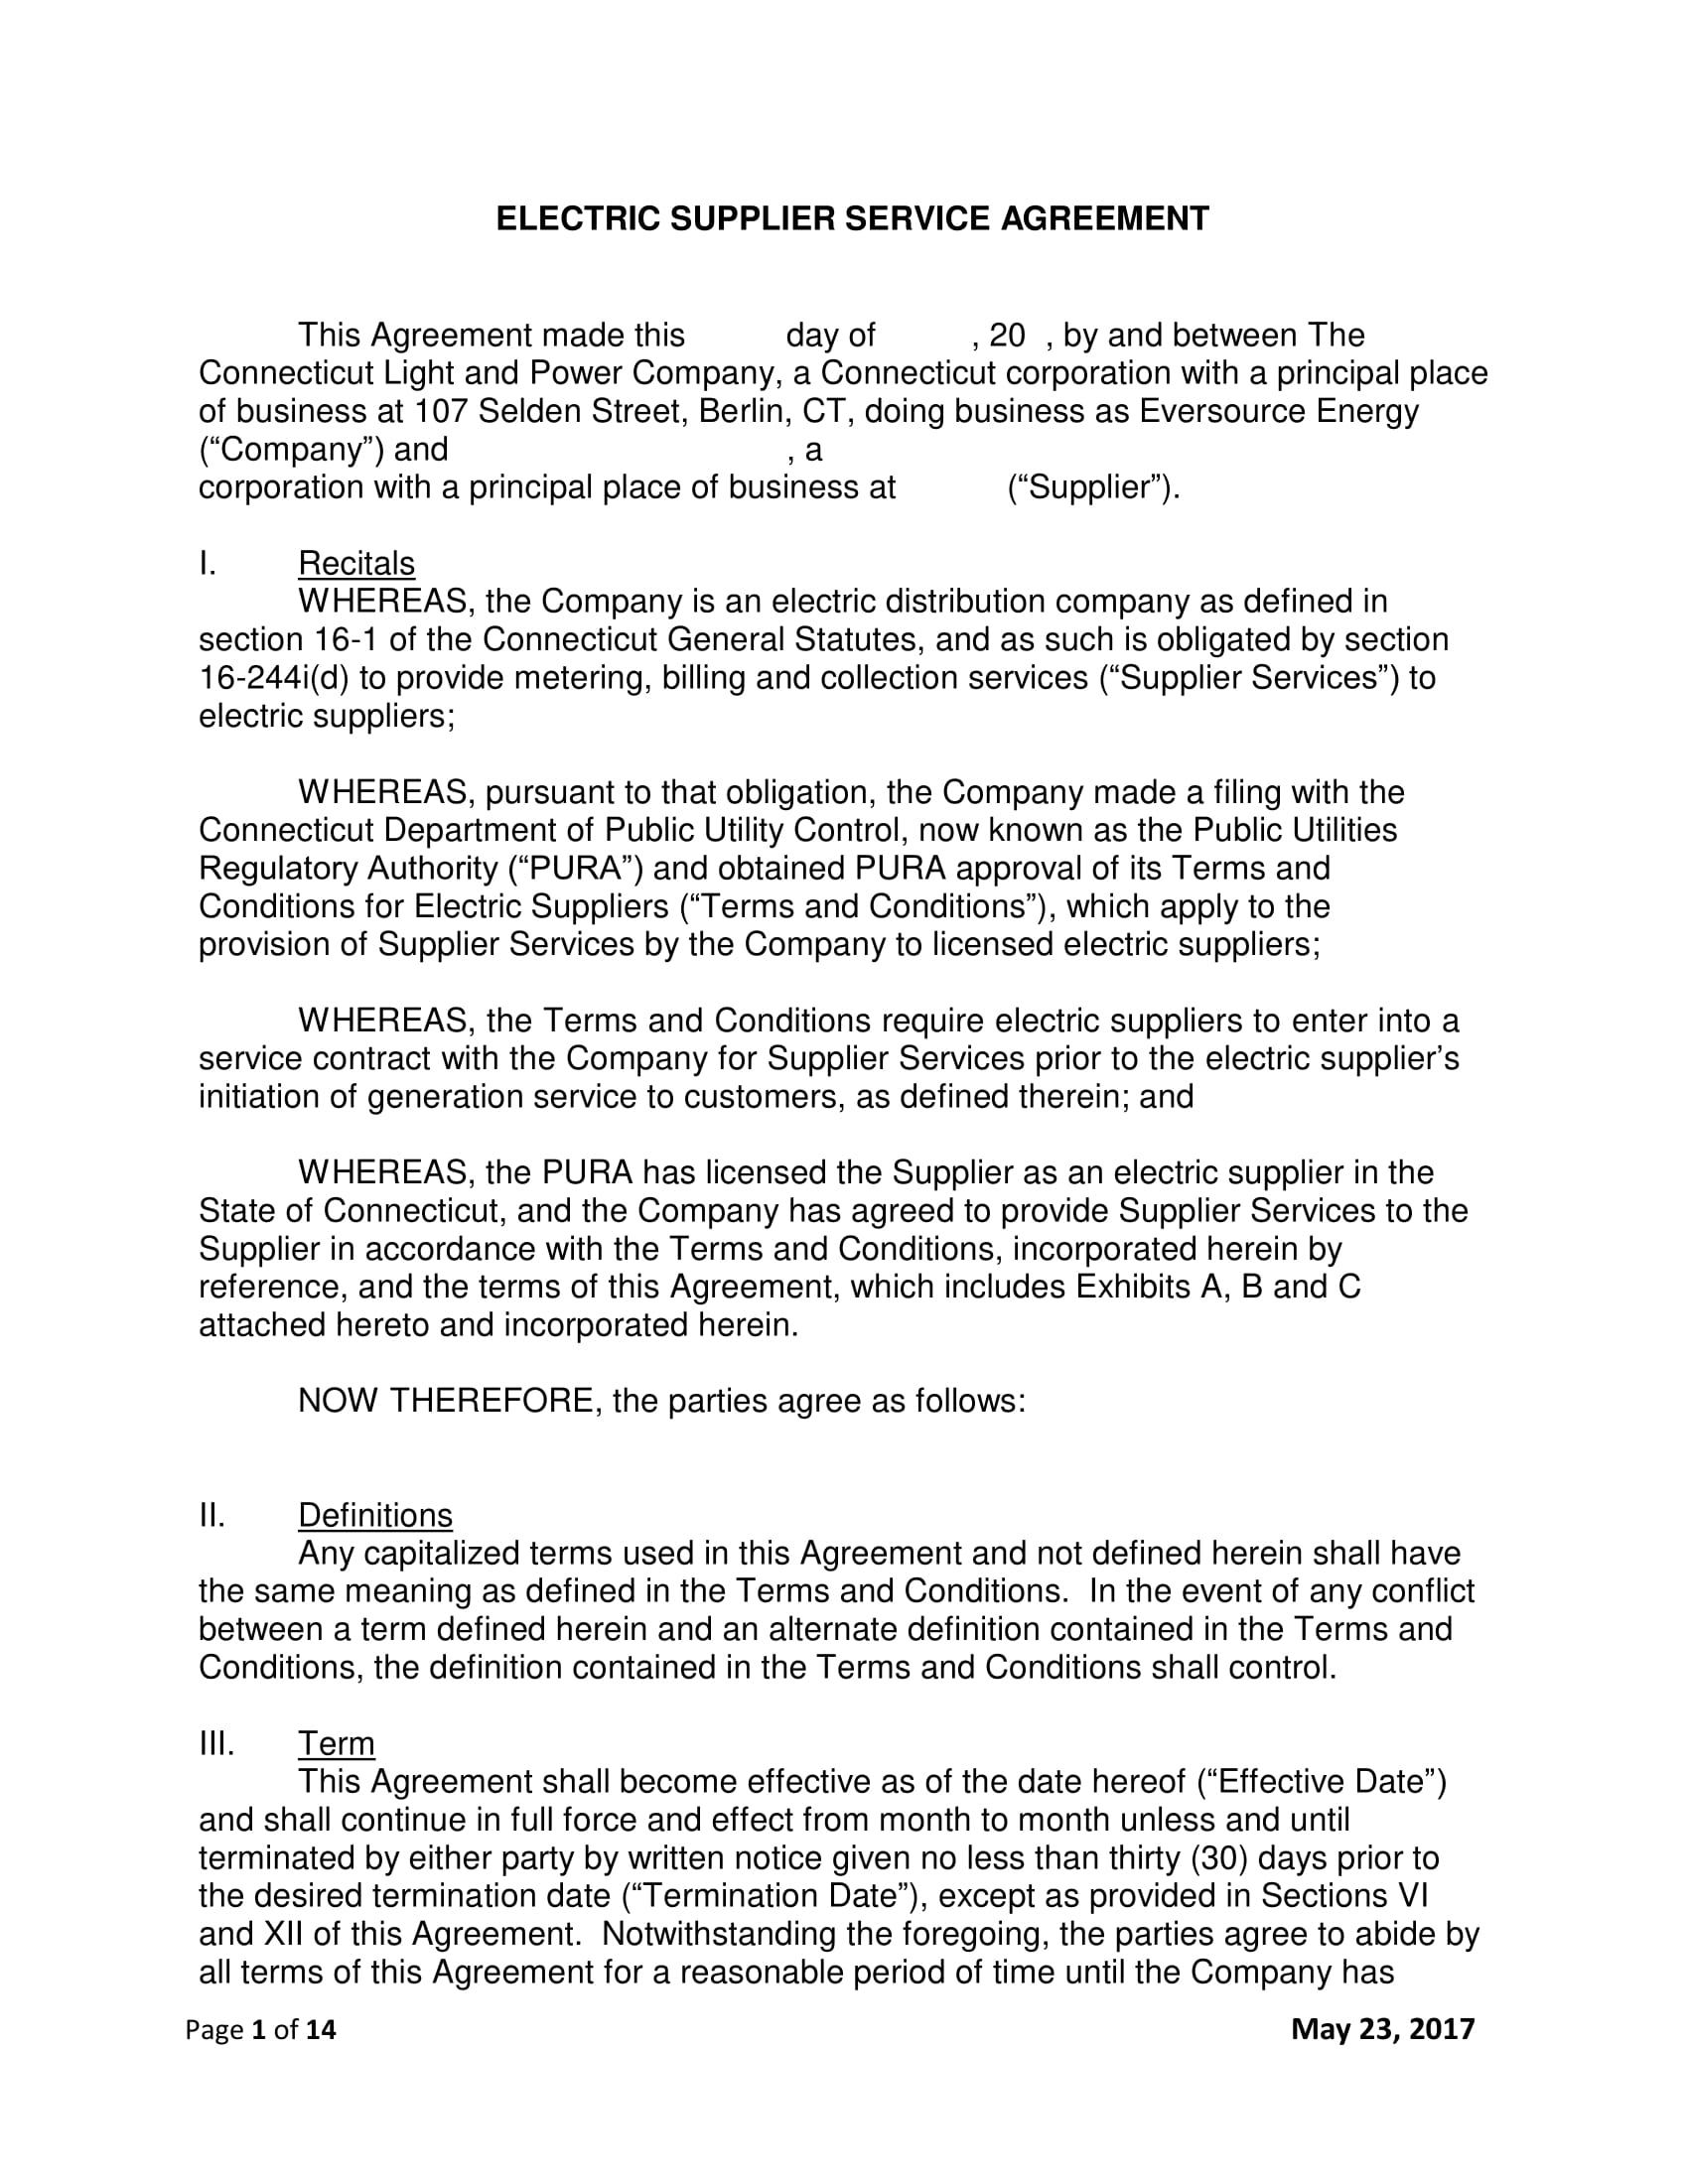 electric supplier service agreement contract template example 01